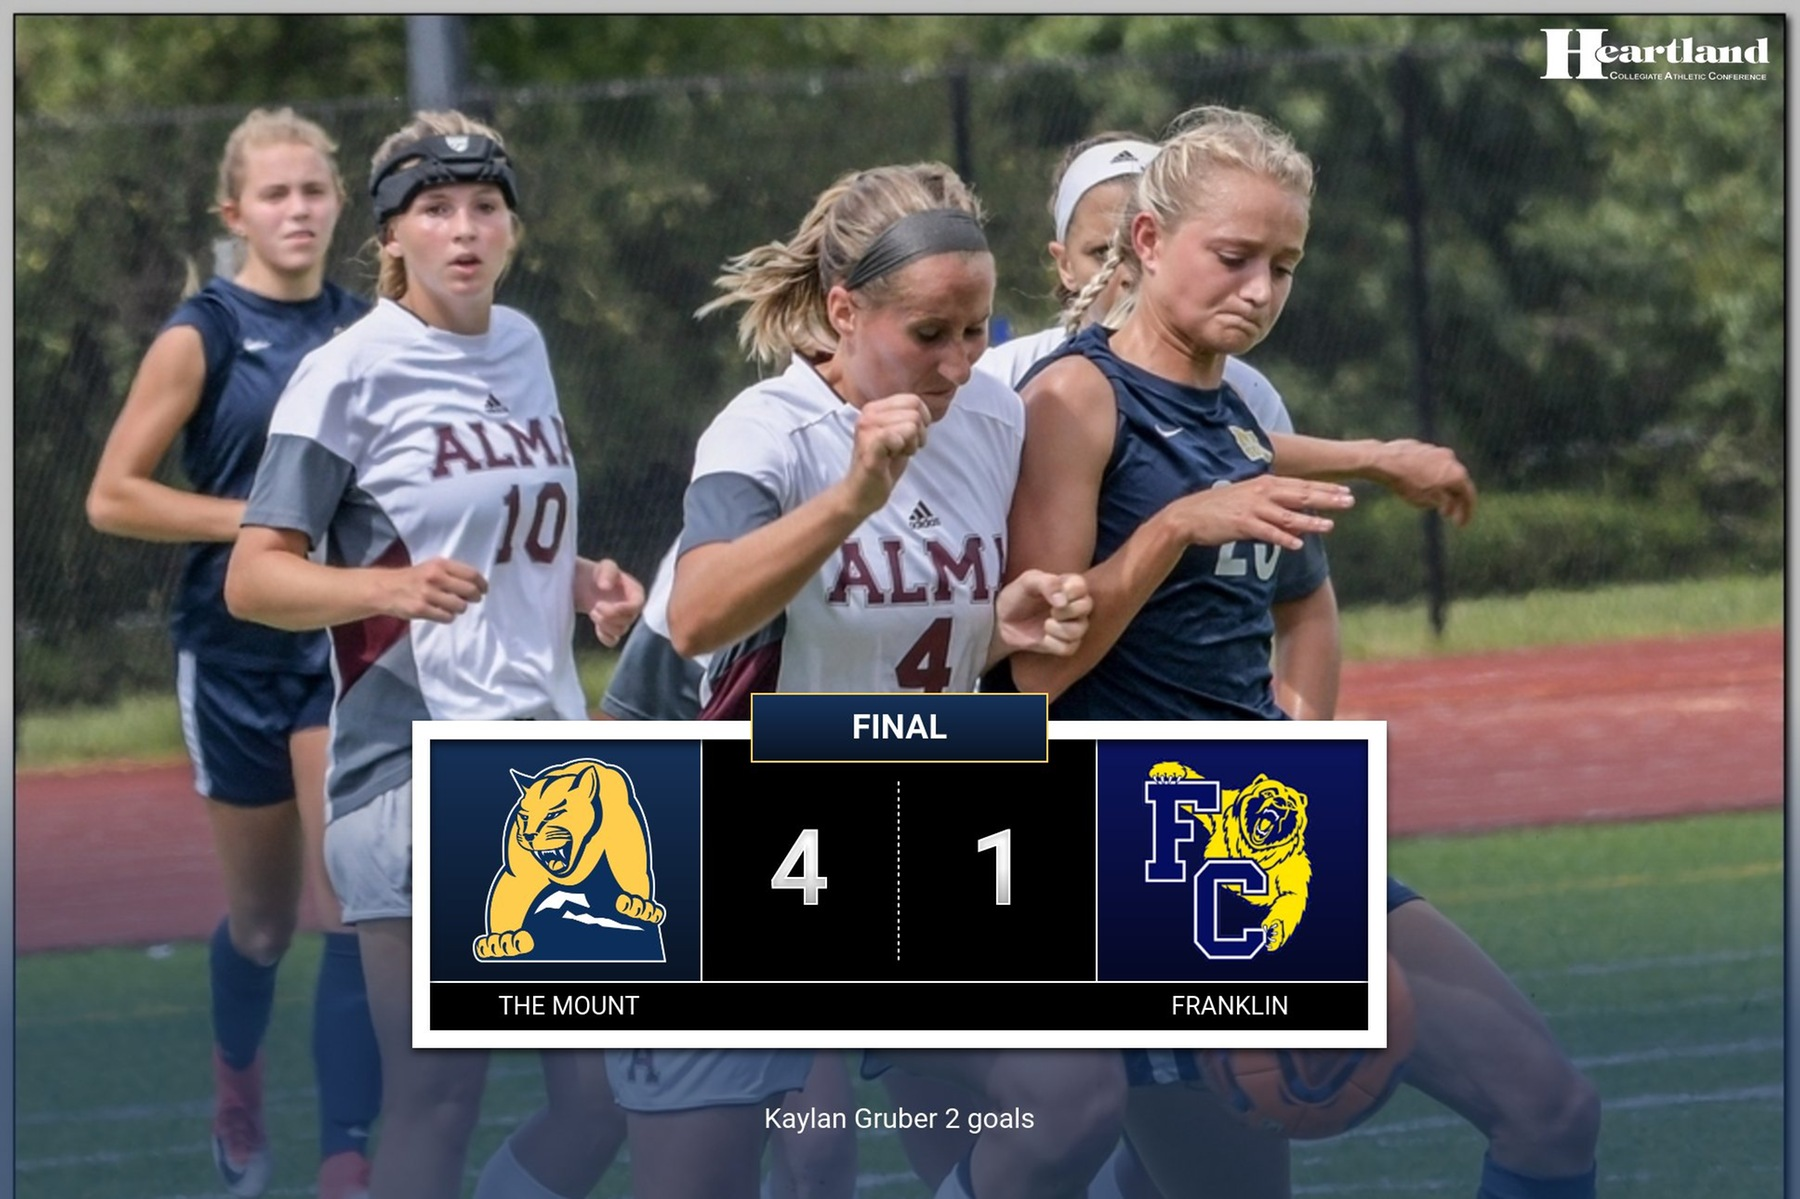 Women's soccer ends regular season with 4-1 win over Franklin, sets stage for HCAC tournament